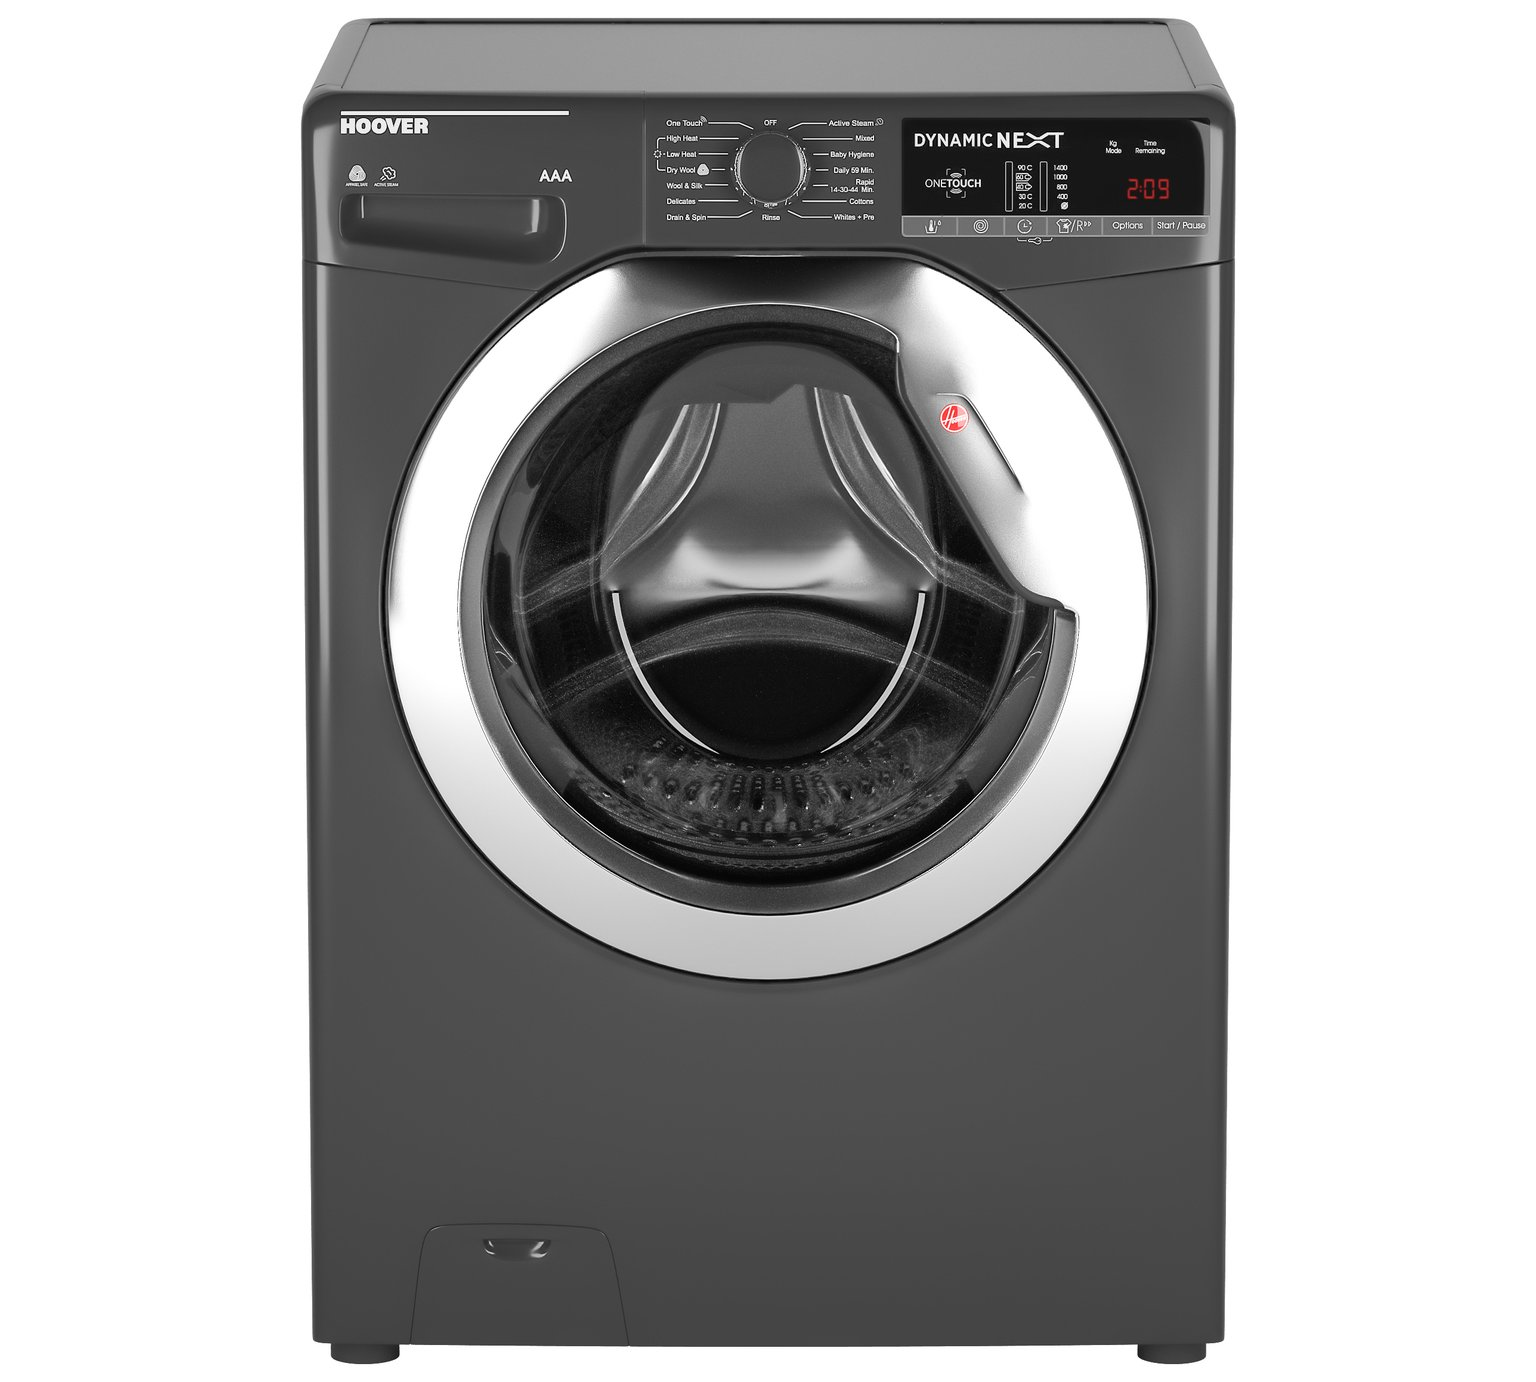 Hoover WDXOA4106HCR 10KG 6KG 1400 Spin Washer Dryer Graphite by Hoover 837/0488